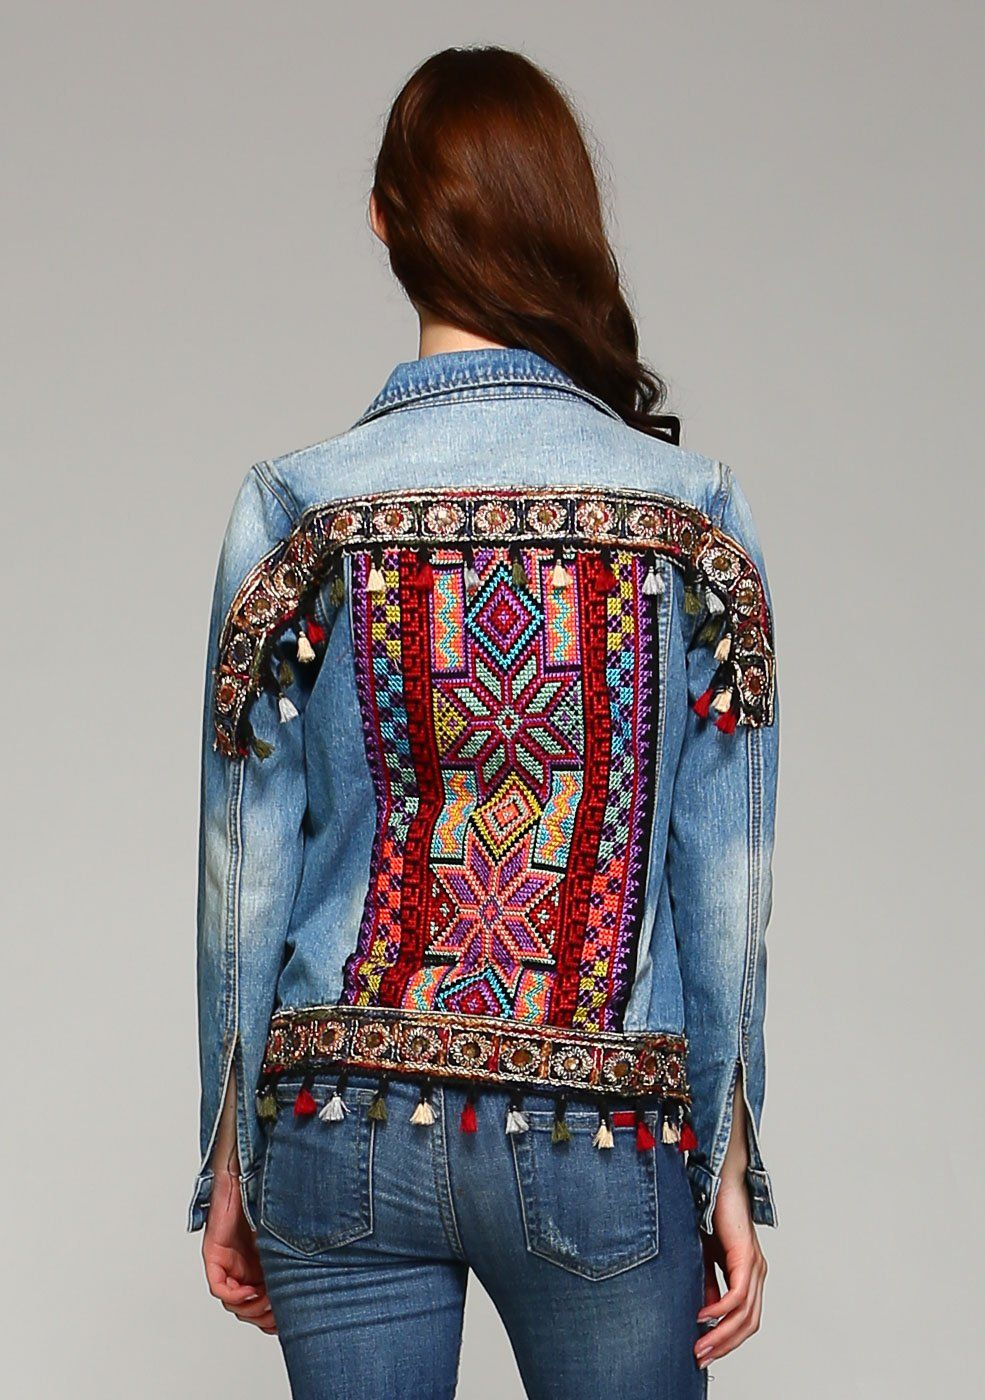 Embellishments Across The Back Elevate The Classic Style Of This Essential Jean Jacket With Its Embroidery Embellished Denim Denim And Lace Embroidered Denim [ 1400 x 985 Pixel ]